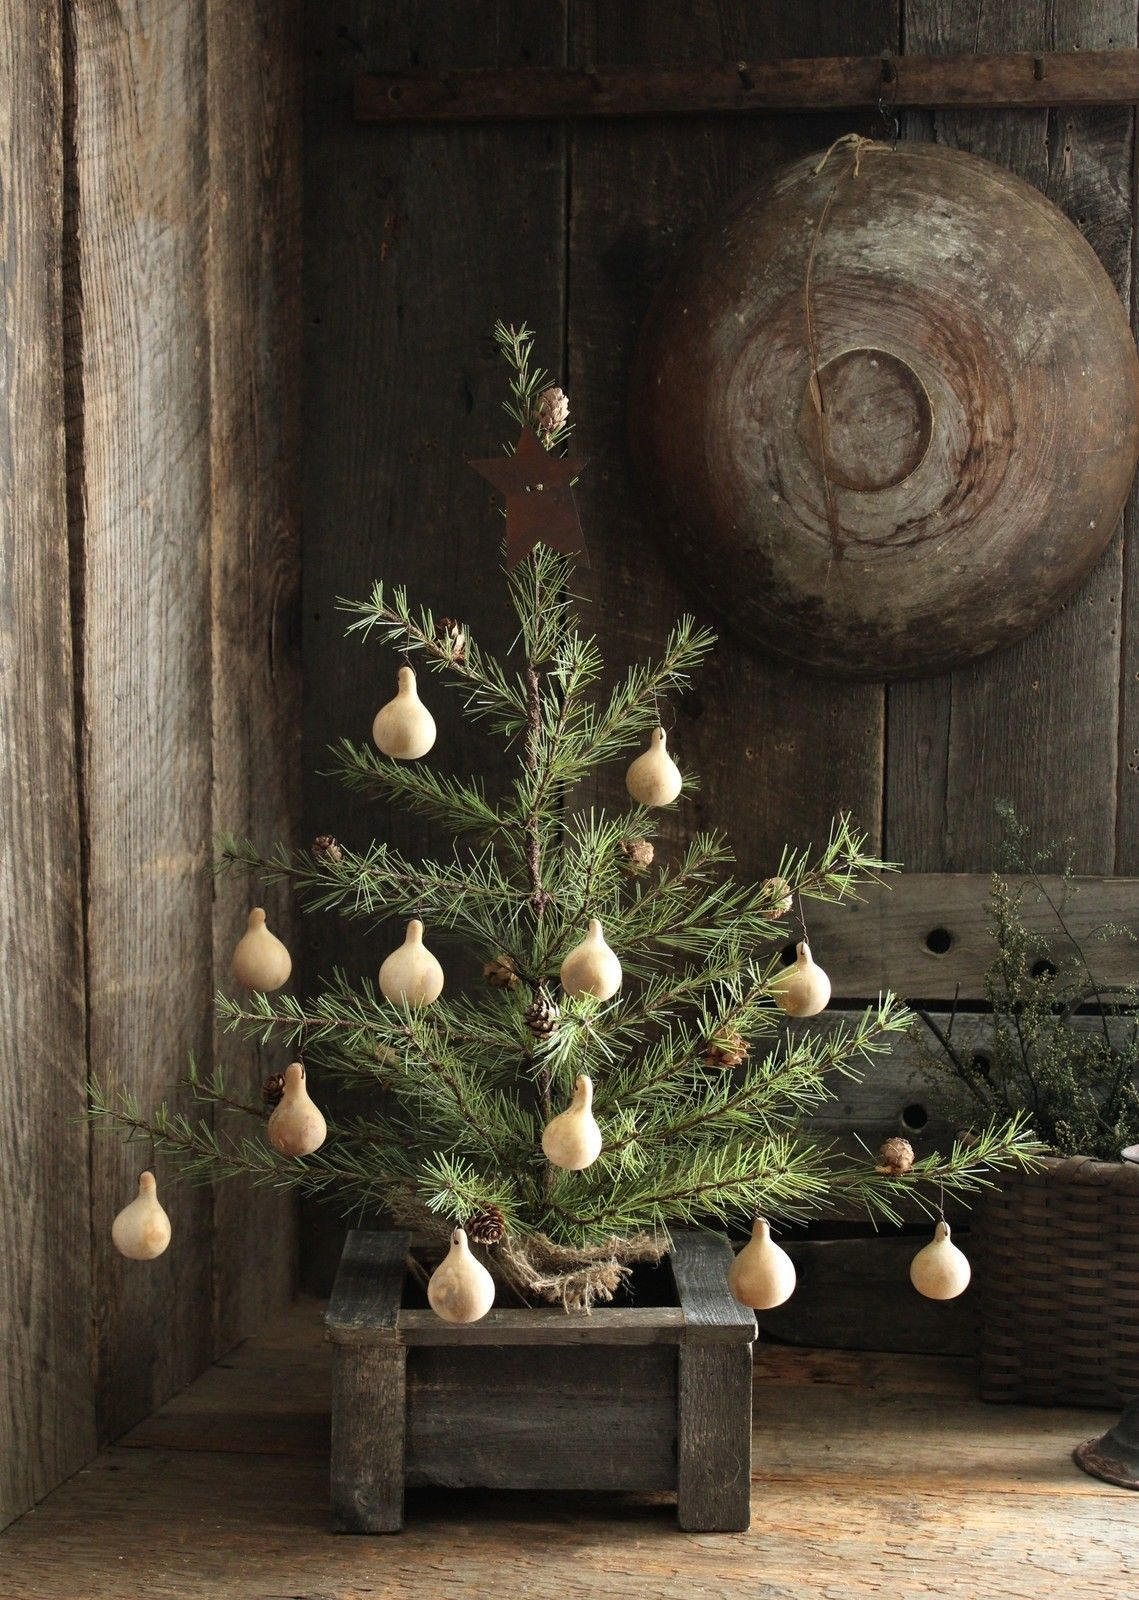 Decorated With Pine Cones And 12 Dried Spinner Gourd Ornies With A Quaint Primitive S Pine Cone Decorations Little Christmas Trees Christmas Table Decorations